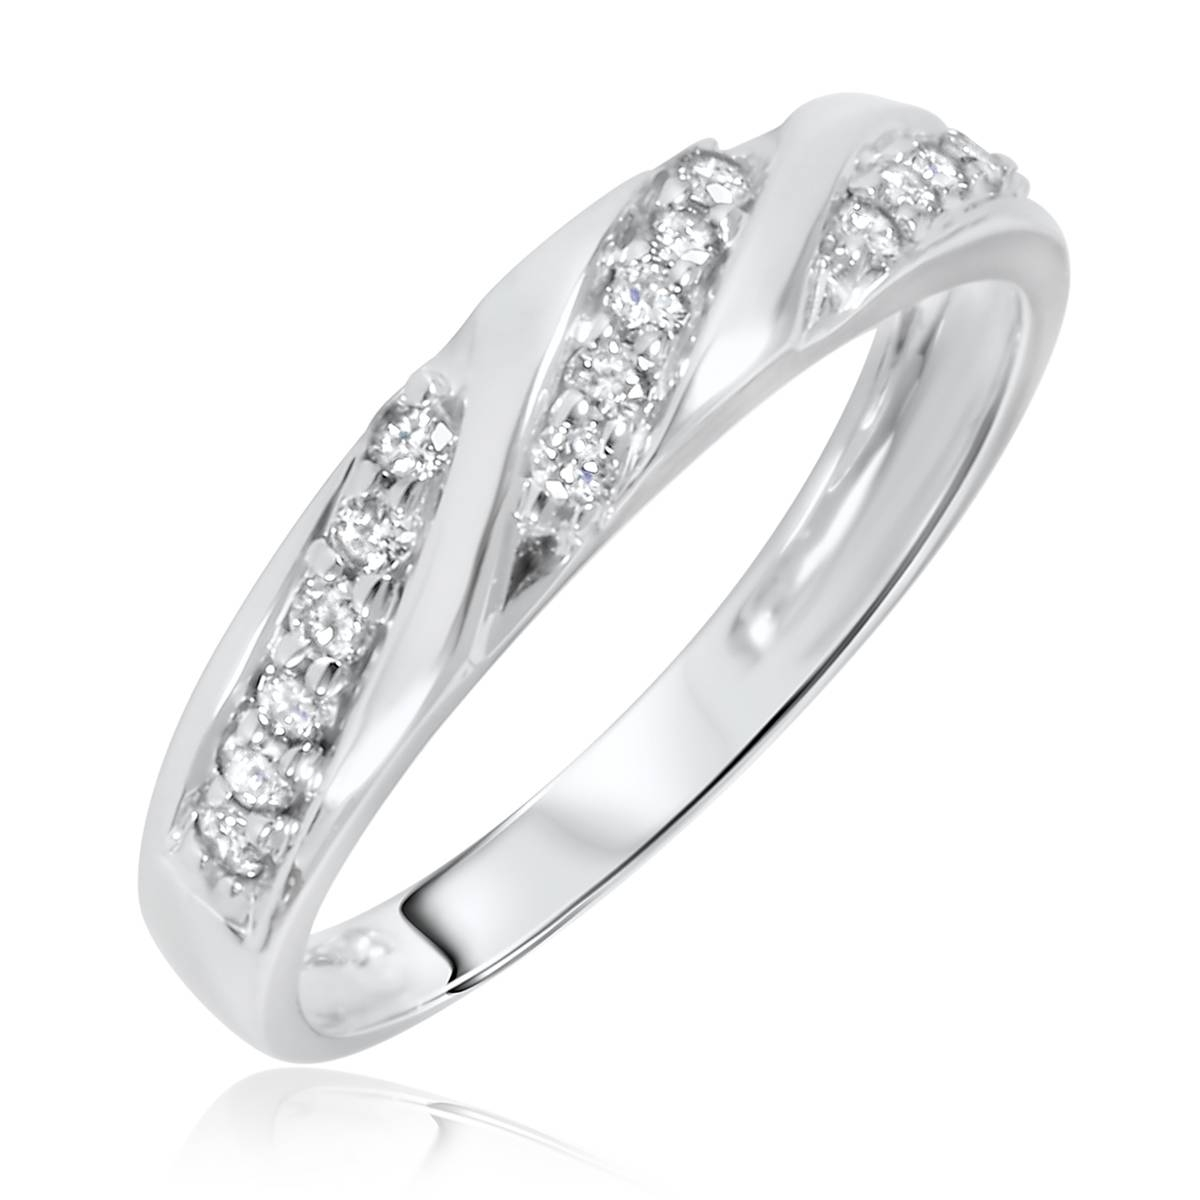 1 Carat Diamond Trio Wedding Ring Set 10K White Gold With White Gold Wedding Bands For Women (Gallery 7 of 15)